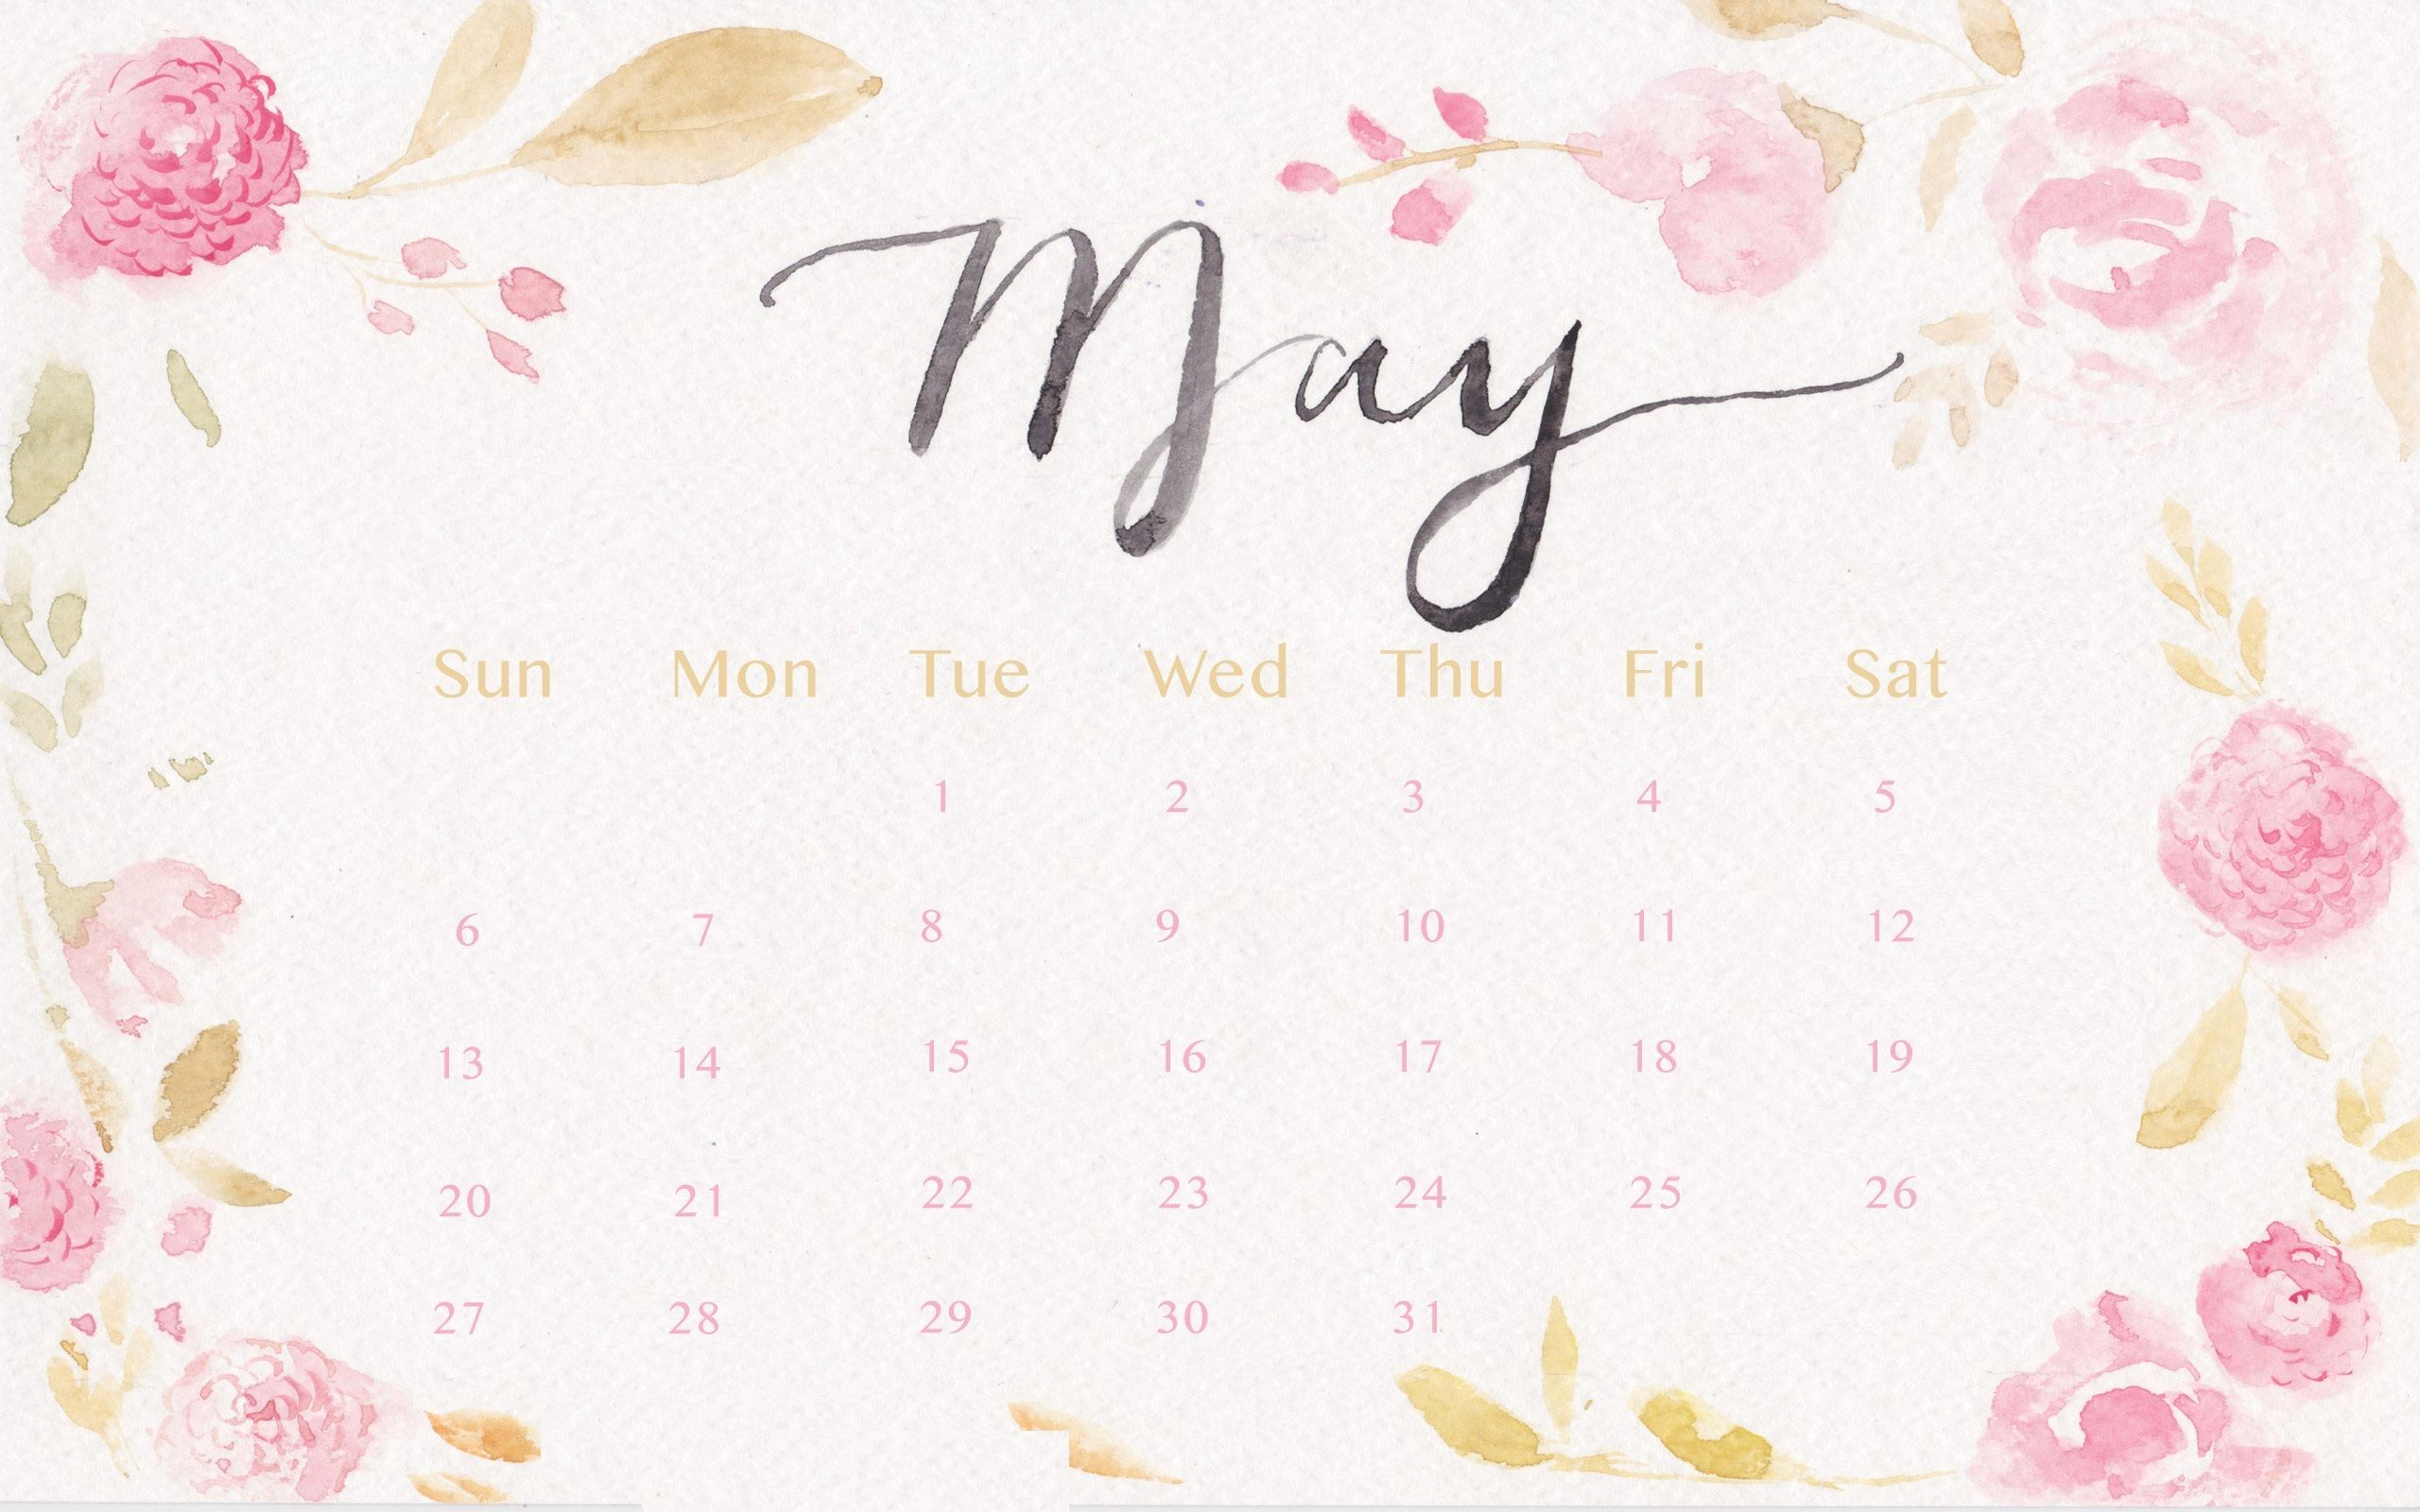 March Calendar Colors Más Recientemente Liberado Watercolor May Month 2018 Calendar Calendar 2018 Of March Calendar Colors Más Arriba-a-fecha Bluegrass Festival Color Palettes Pinterest